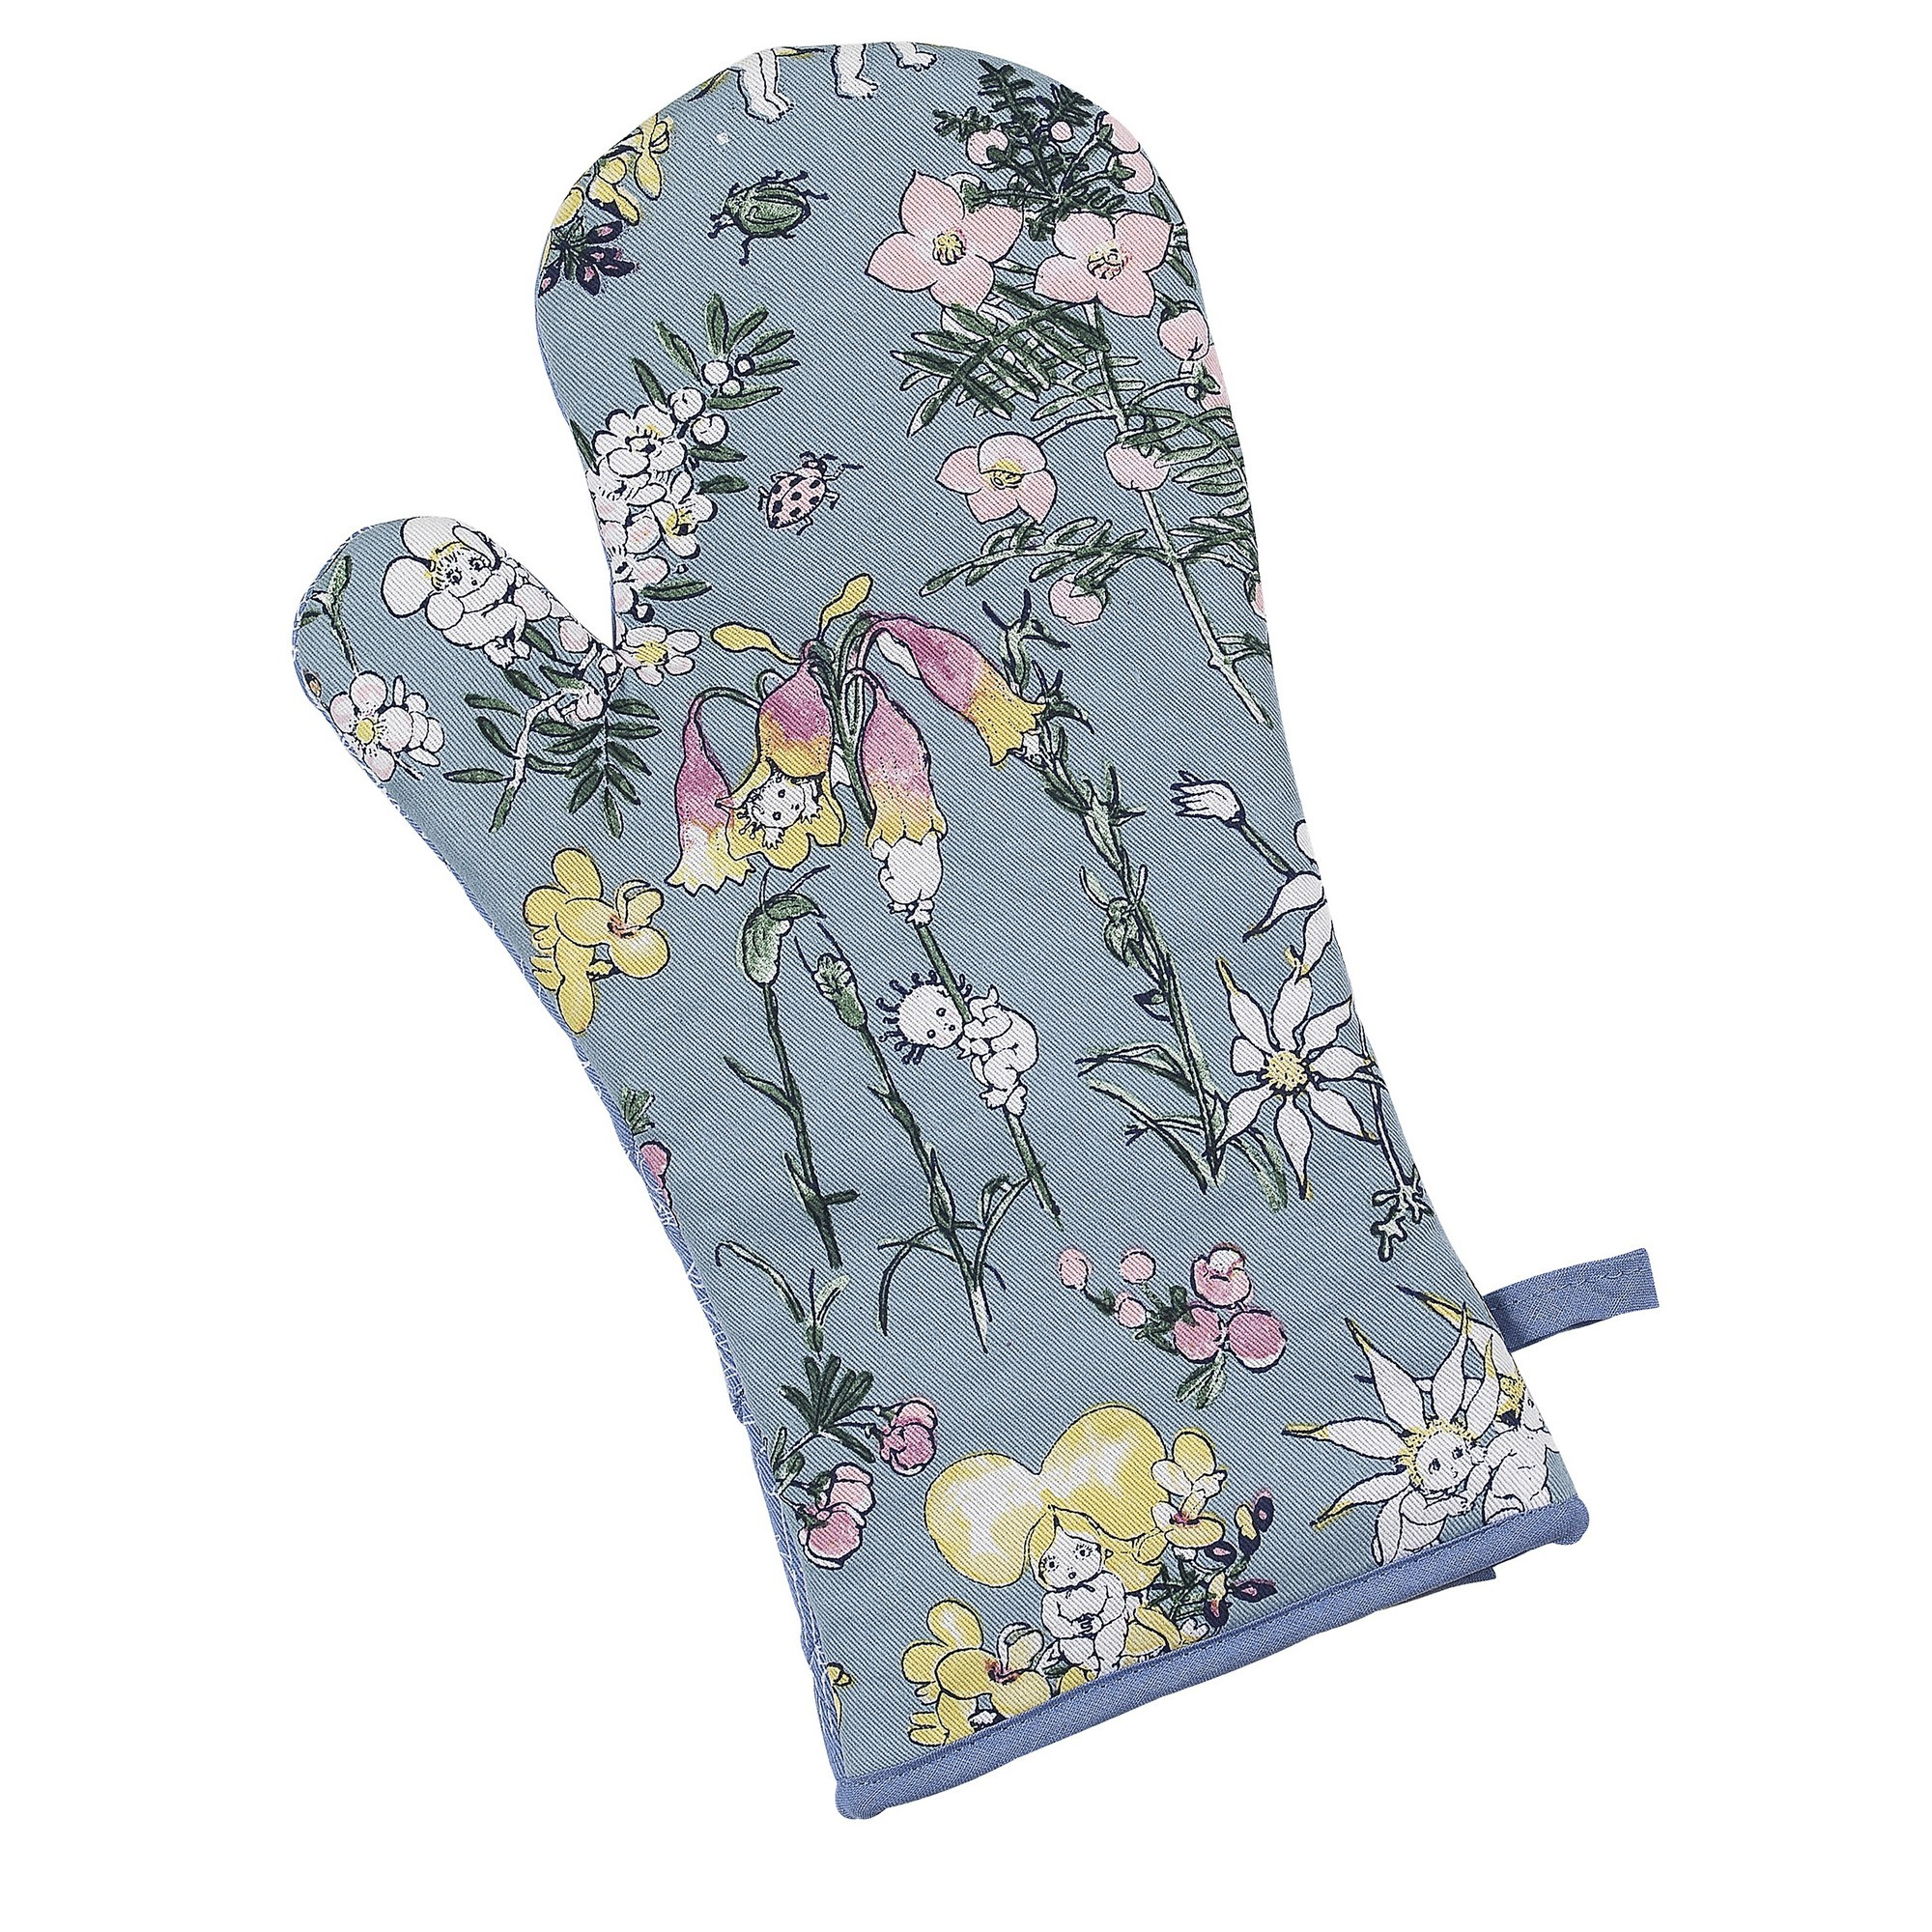 Ecology May Gibbs Flower Babies Cotton Oven Glove, Meadow